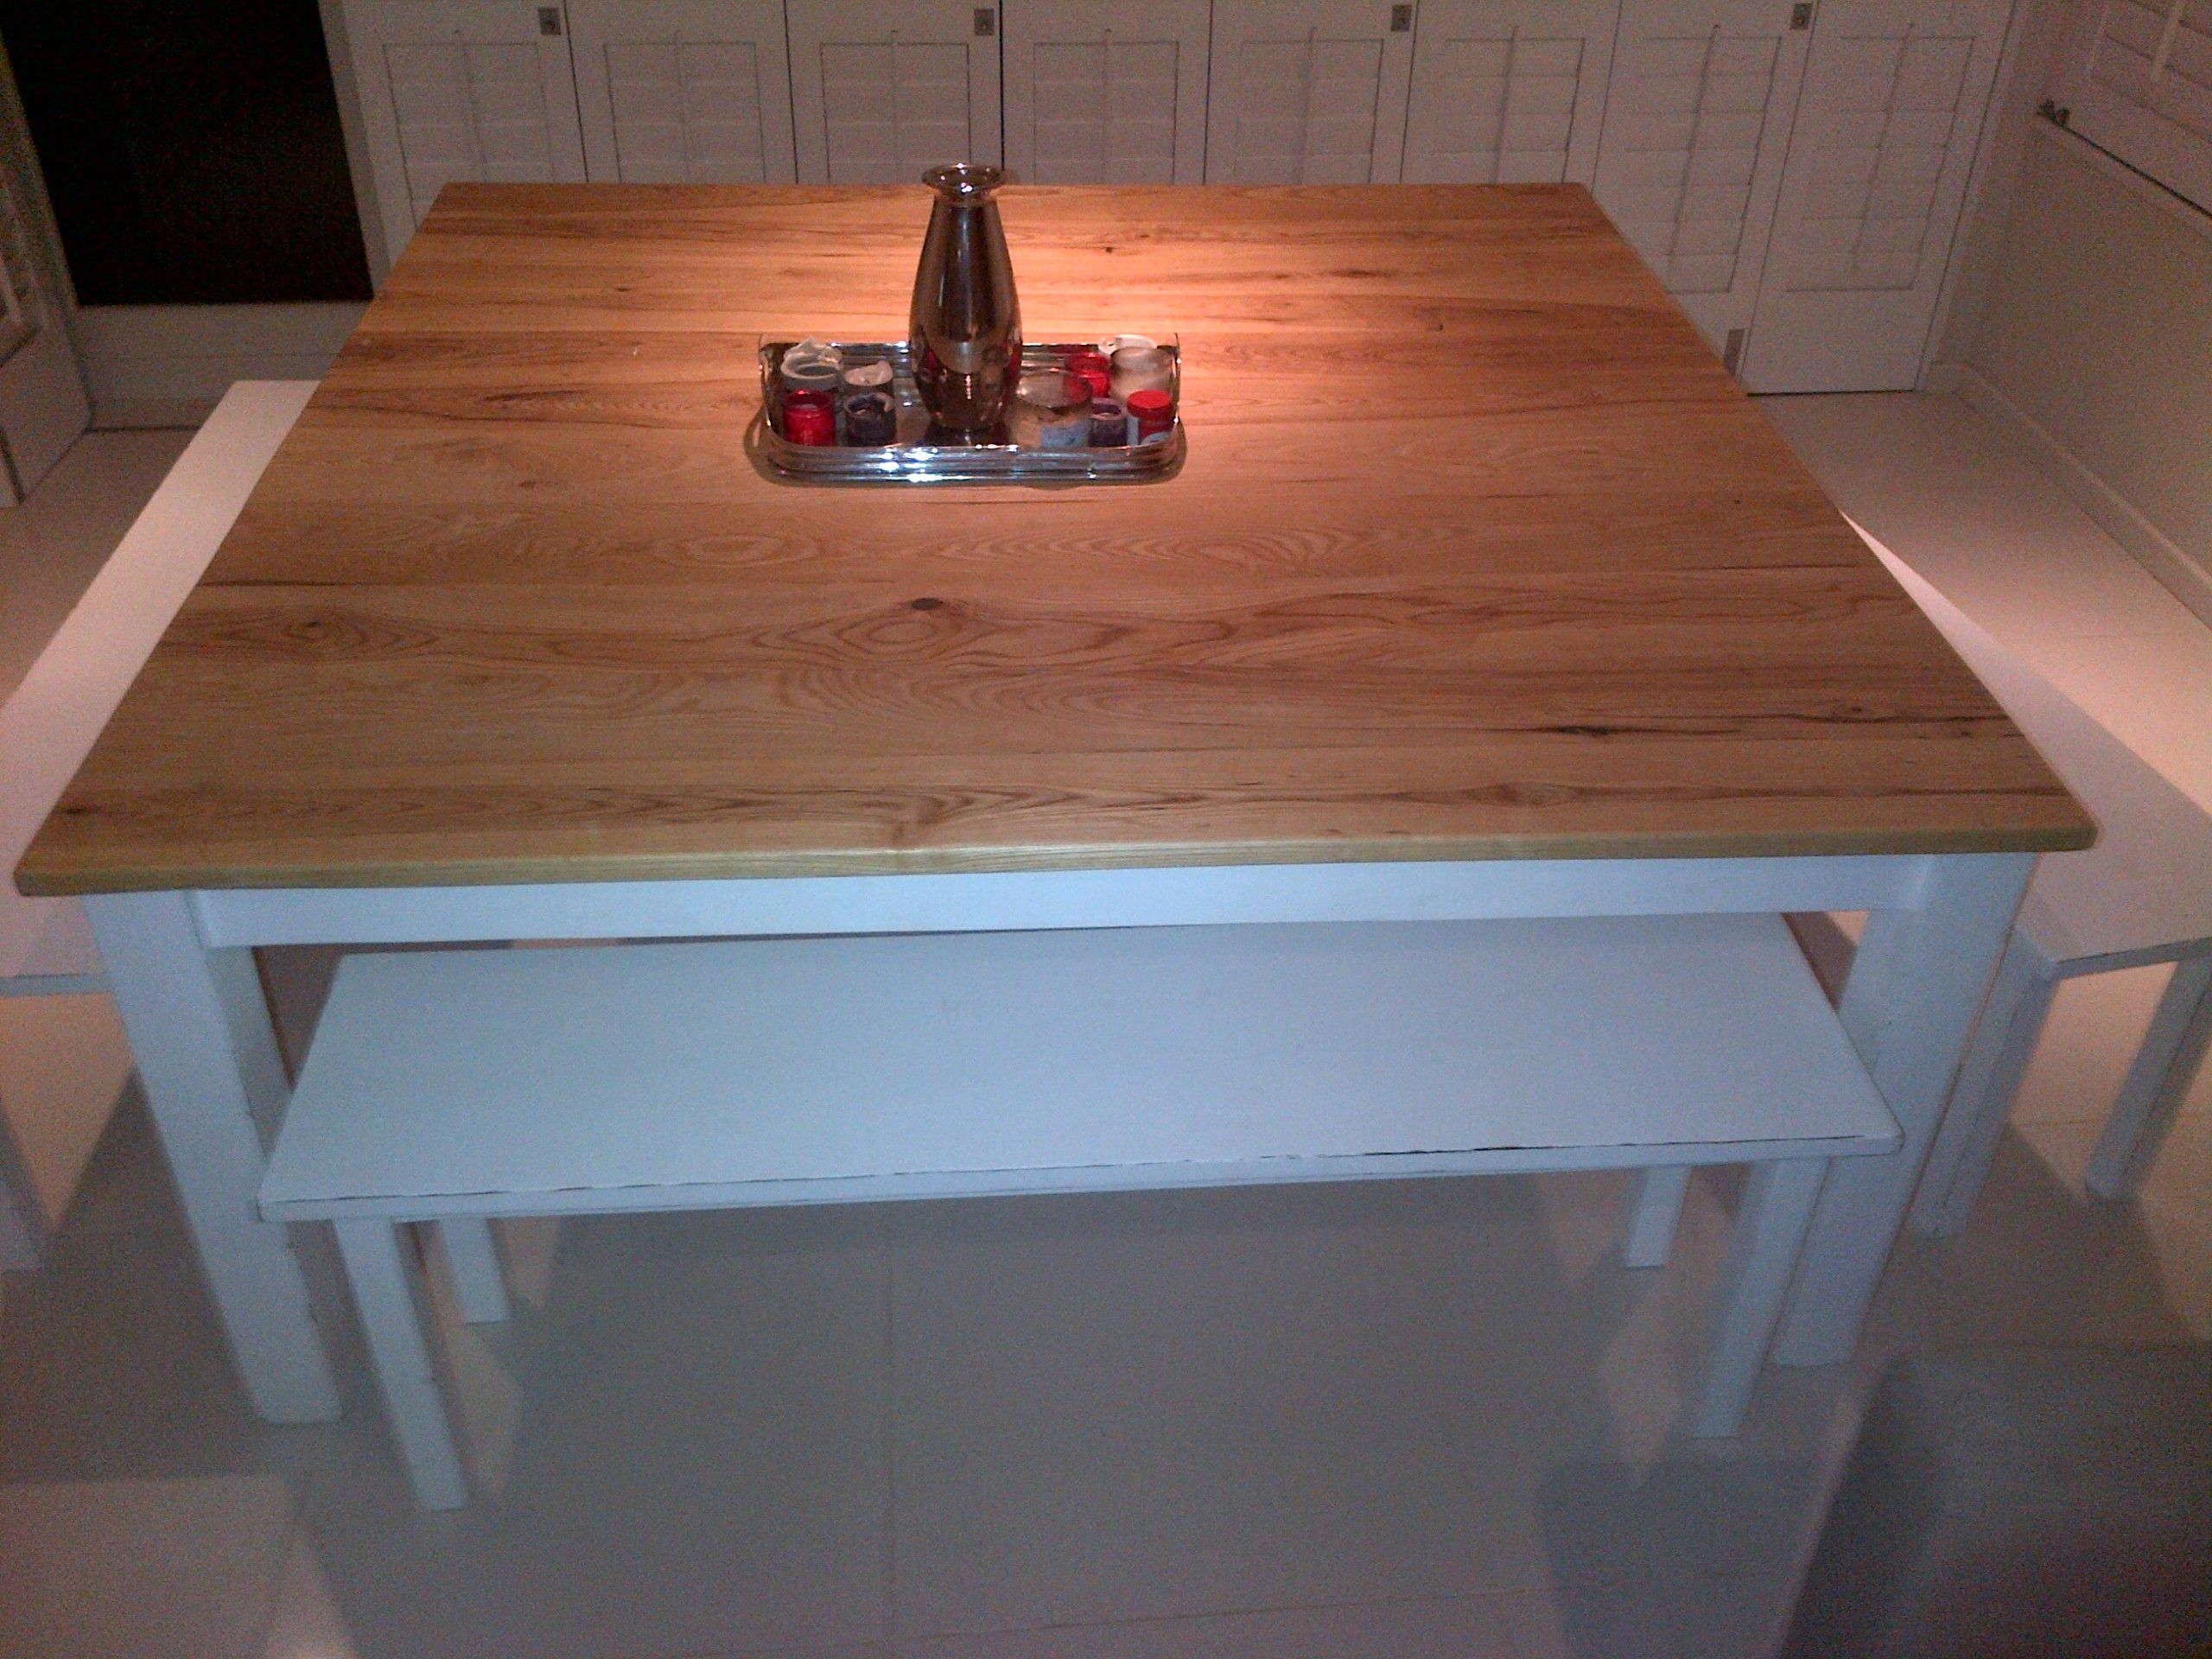 Rustic Dining Room Table Seats Recycled And Reclaimed Wood With - Reclaimed wood dining table seats 10